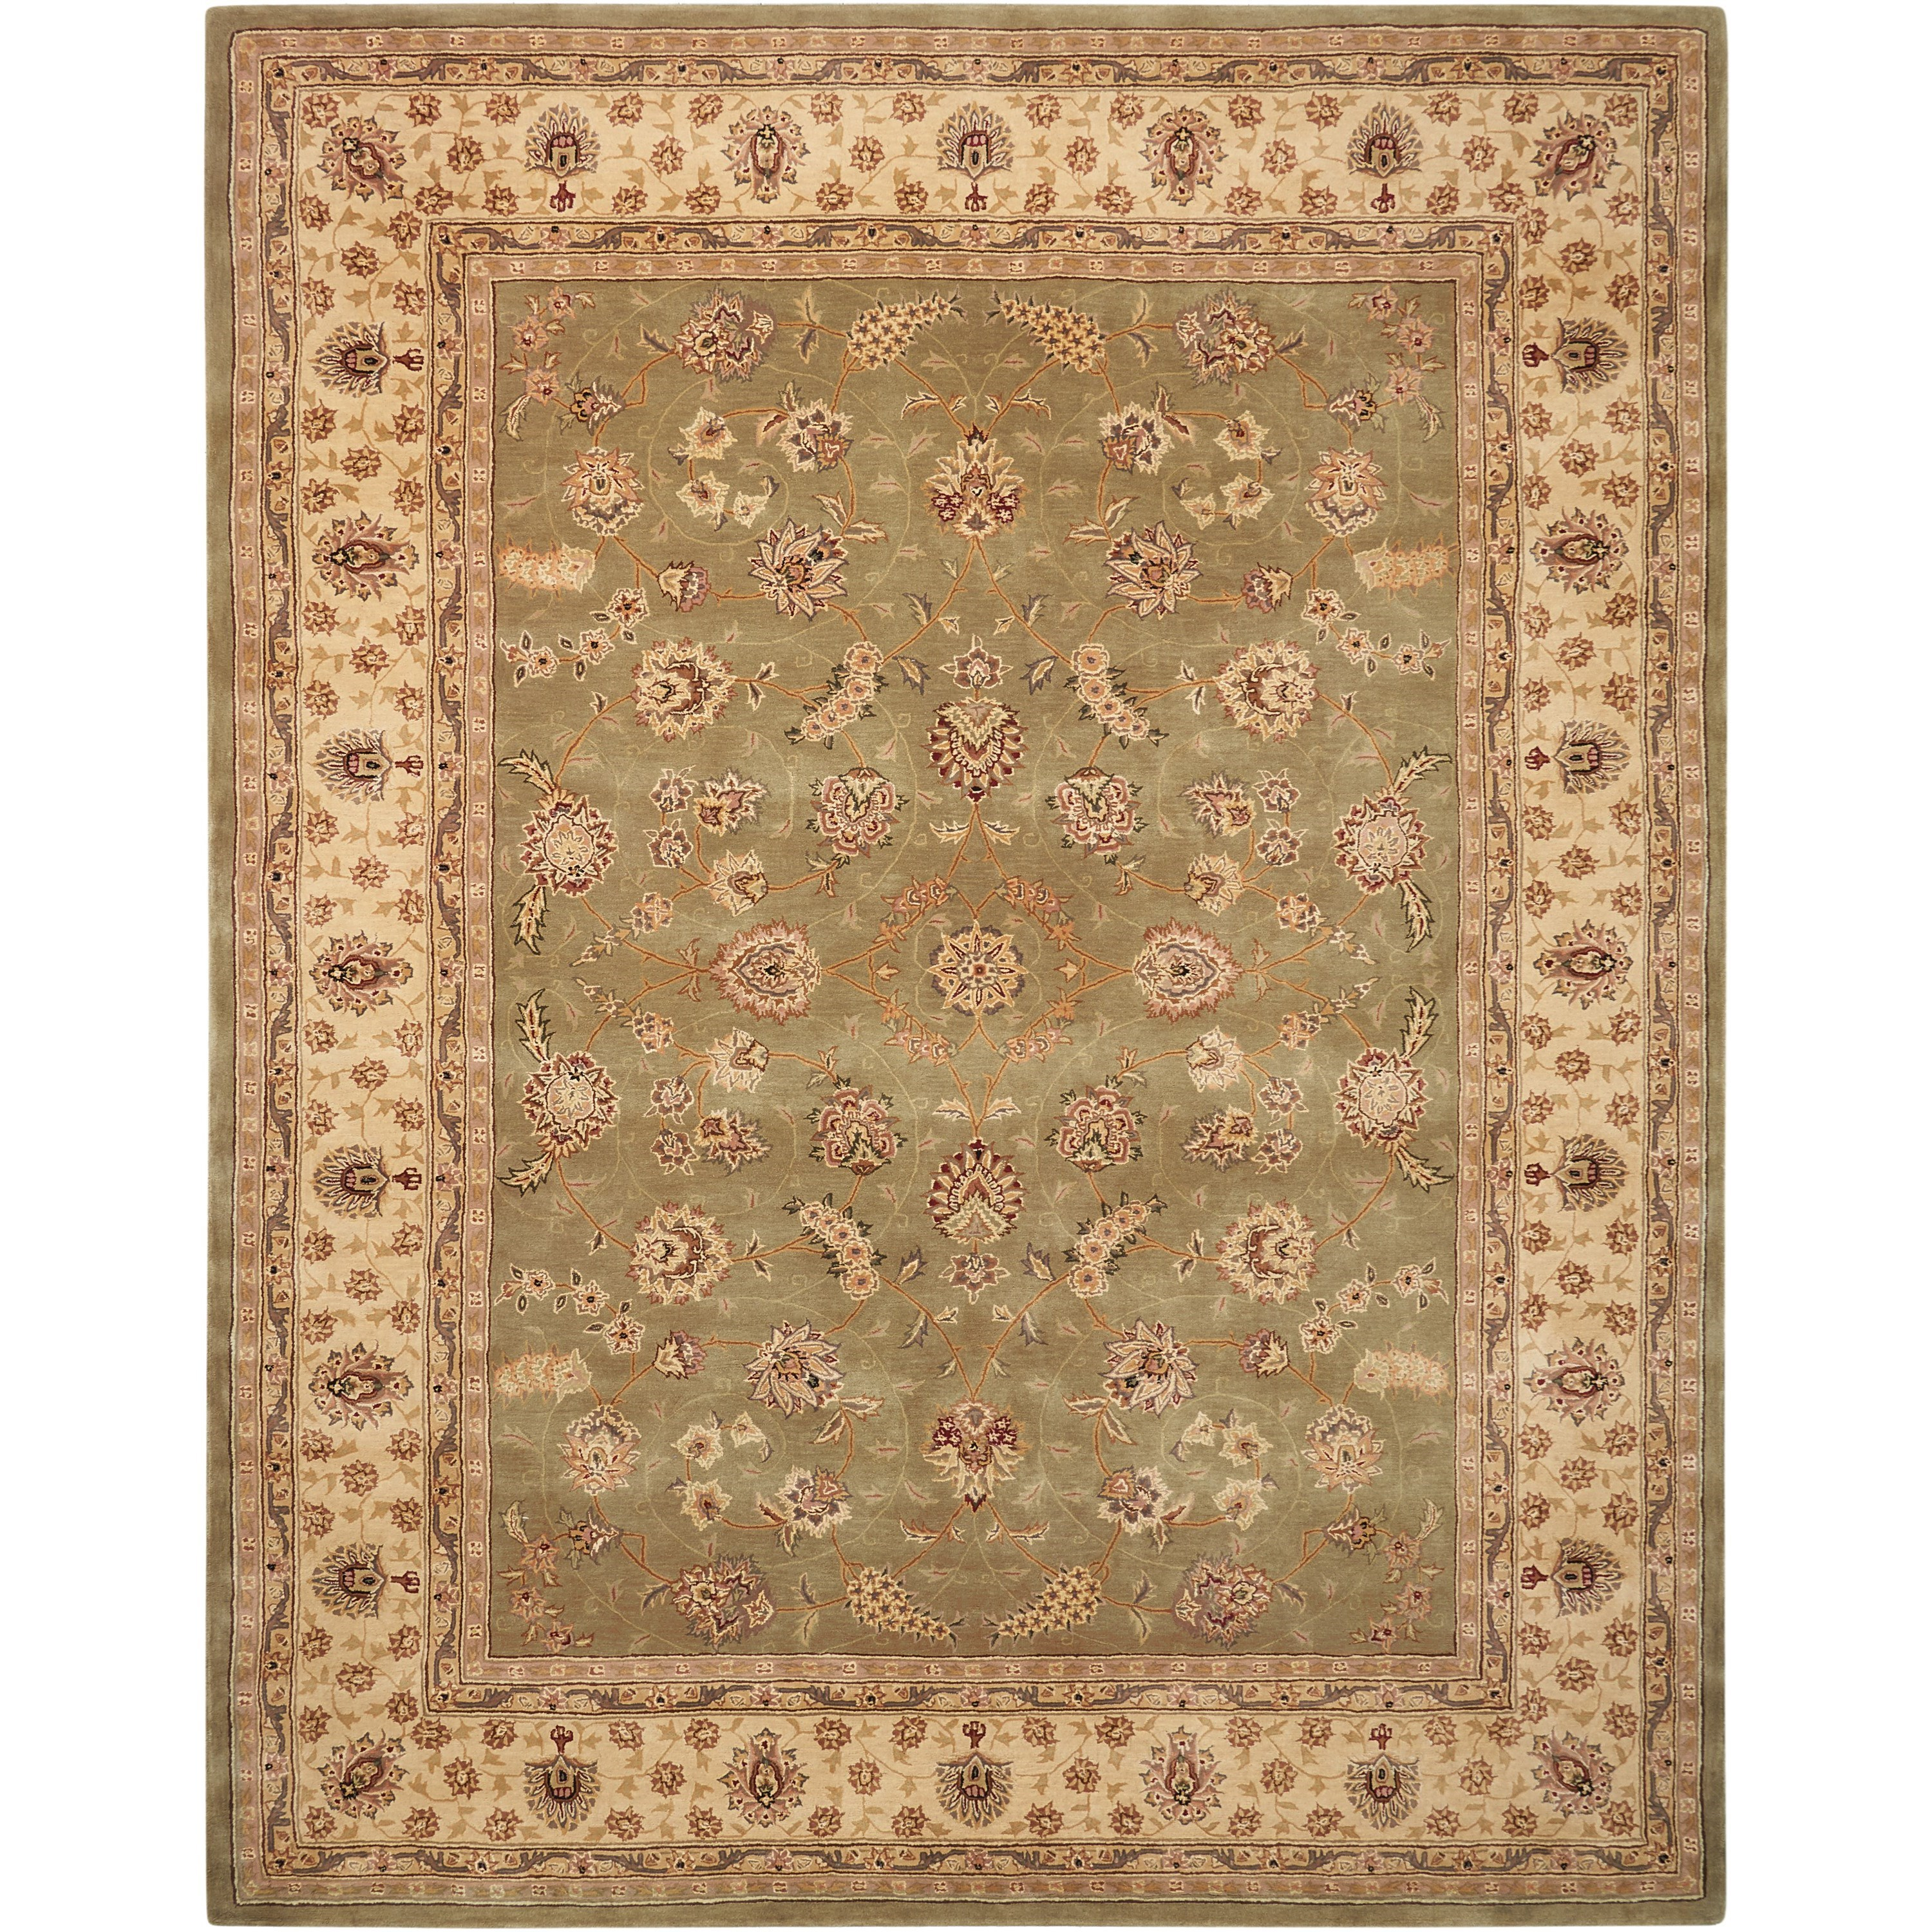 Nourison 2000 2000 2003 Olive 8'x10'  Area Rug by Nourison at Home Collections Furniture